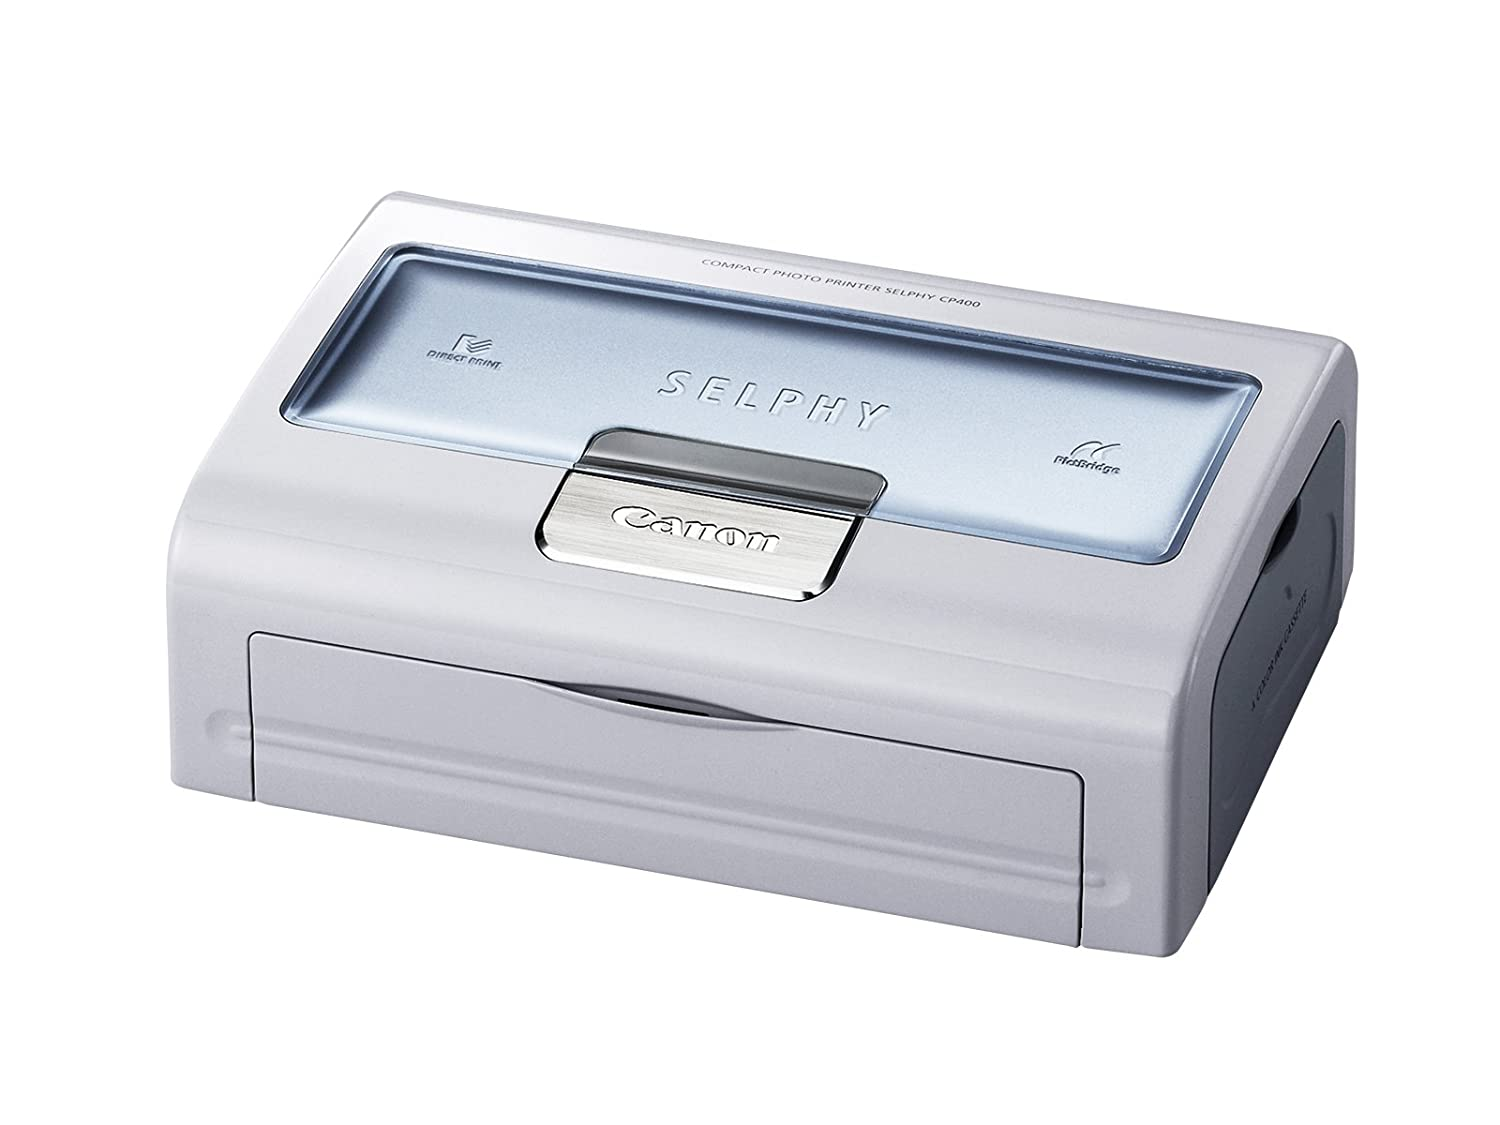 Canon SELPHY CP400 Compact Photo Printer impresora de foto ...